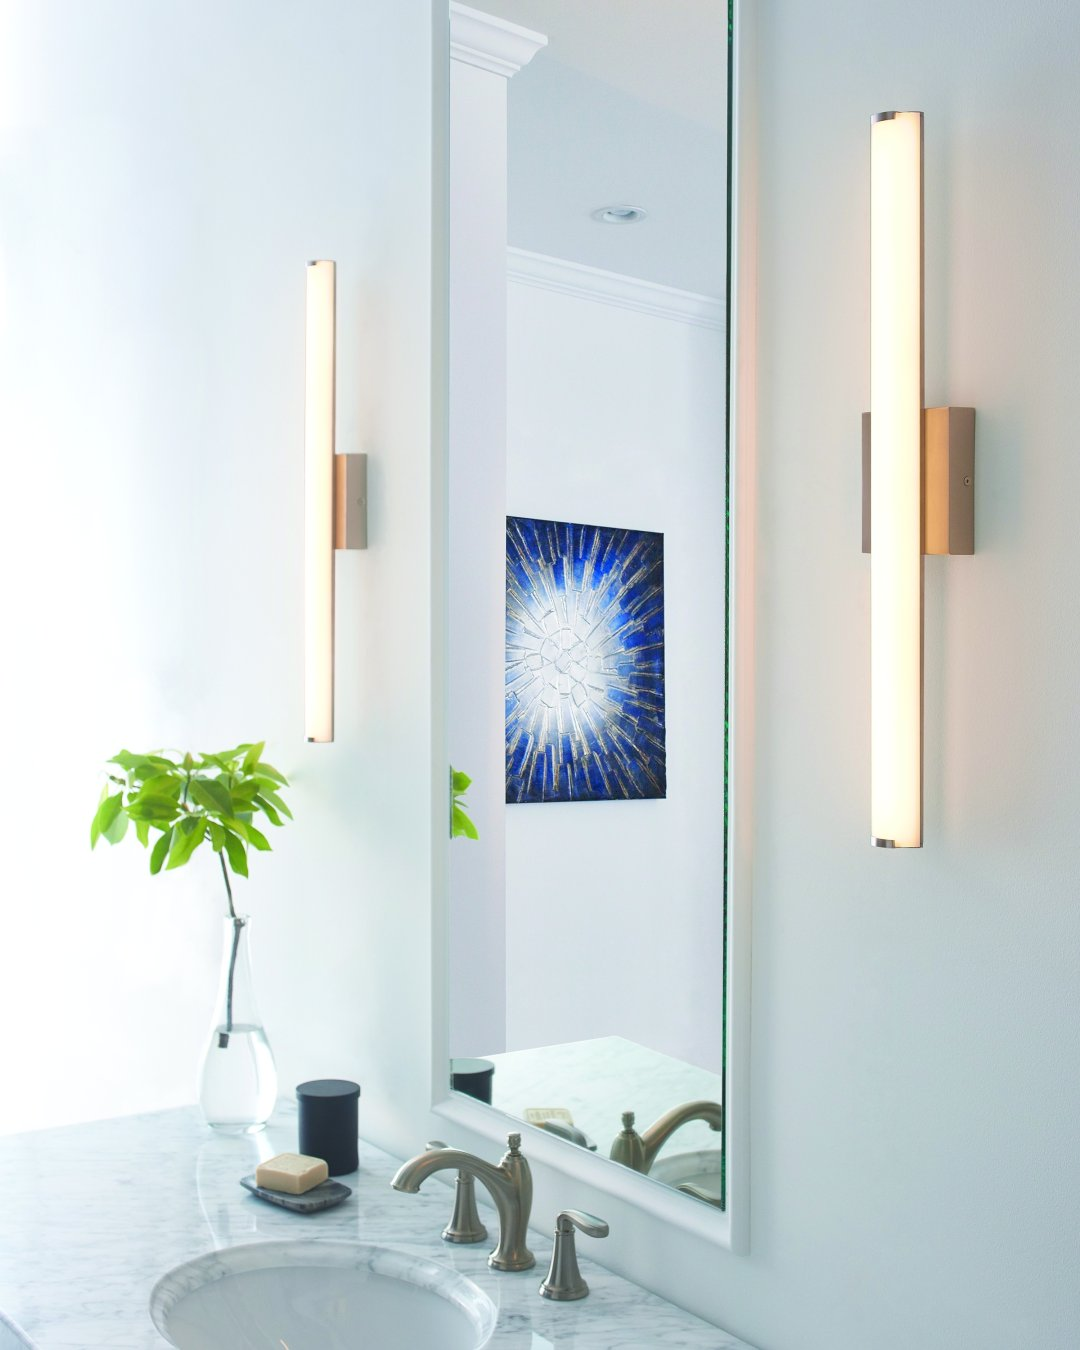 Bathroom Lighting Code Requirements bathroom lighting ideas | 3 tips for better bath lighting at